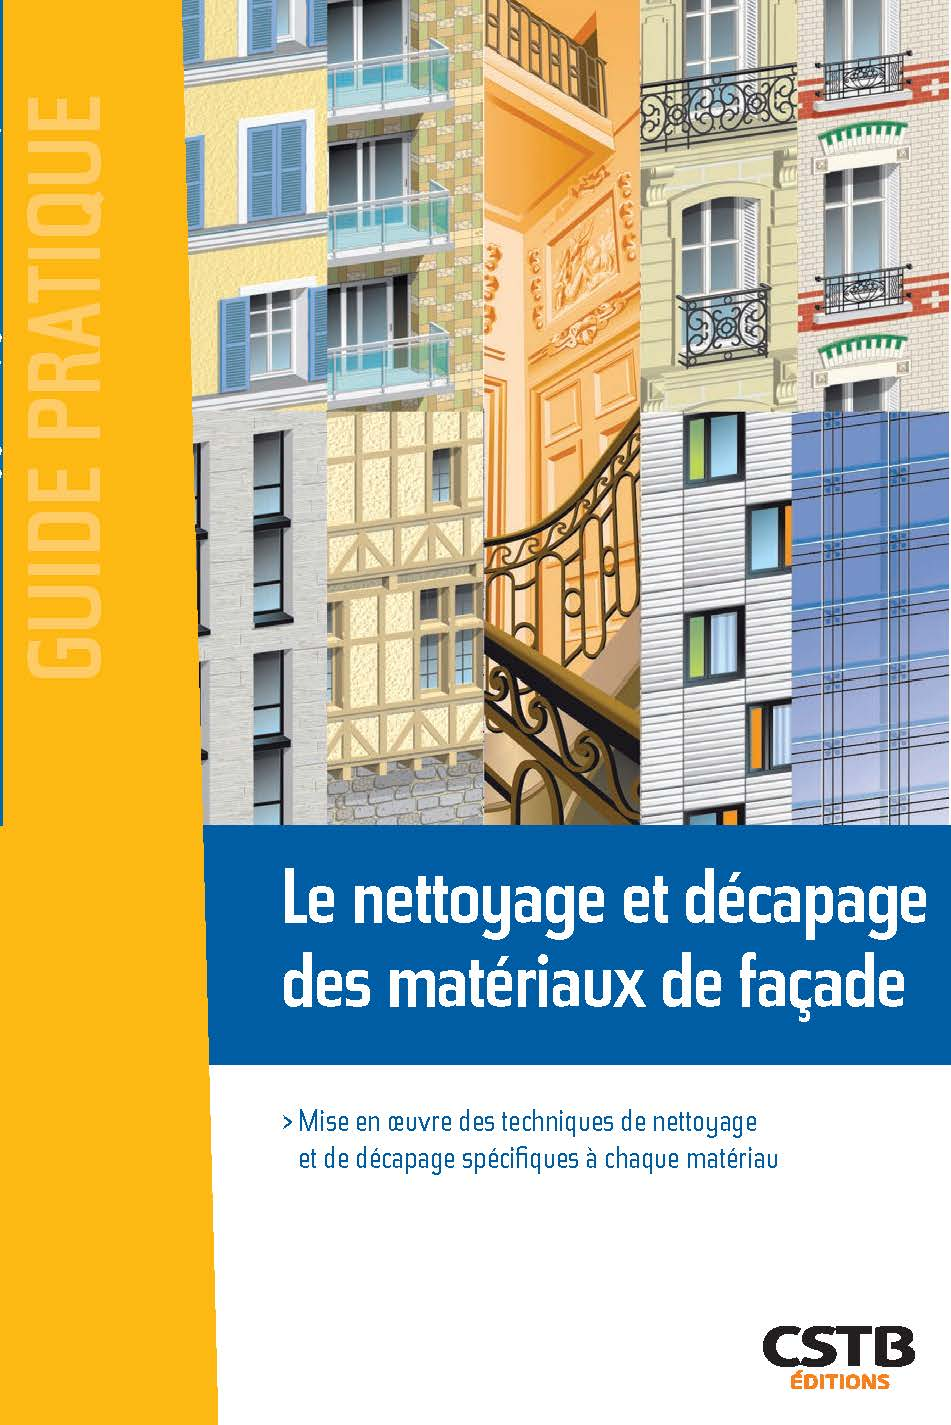 Nettoyage-decapage-materiaux-facade